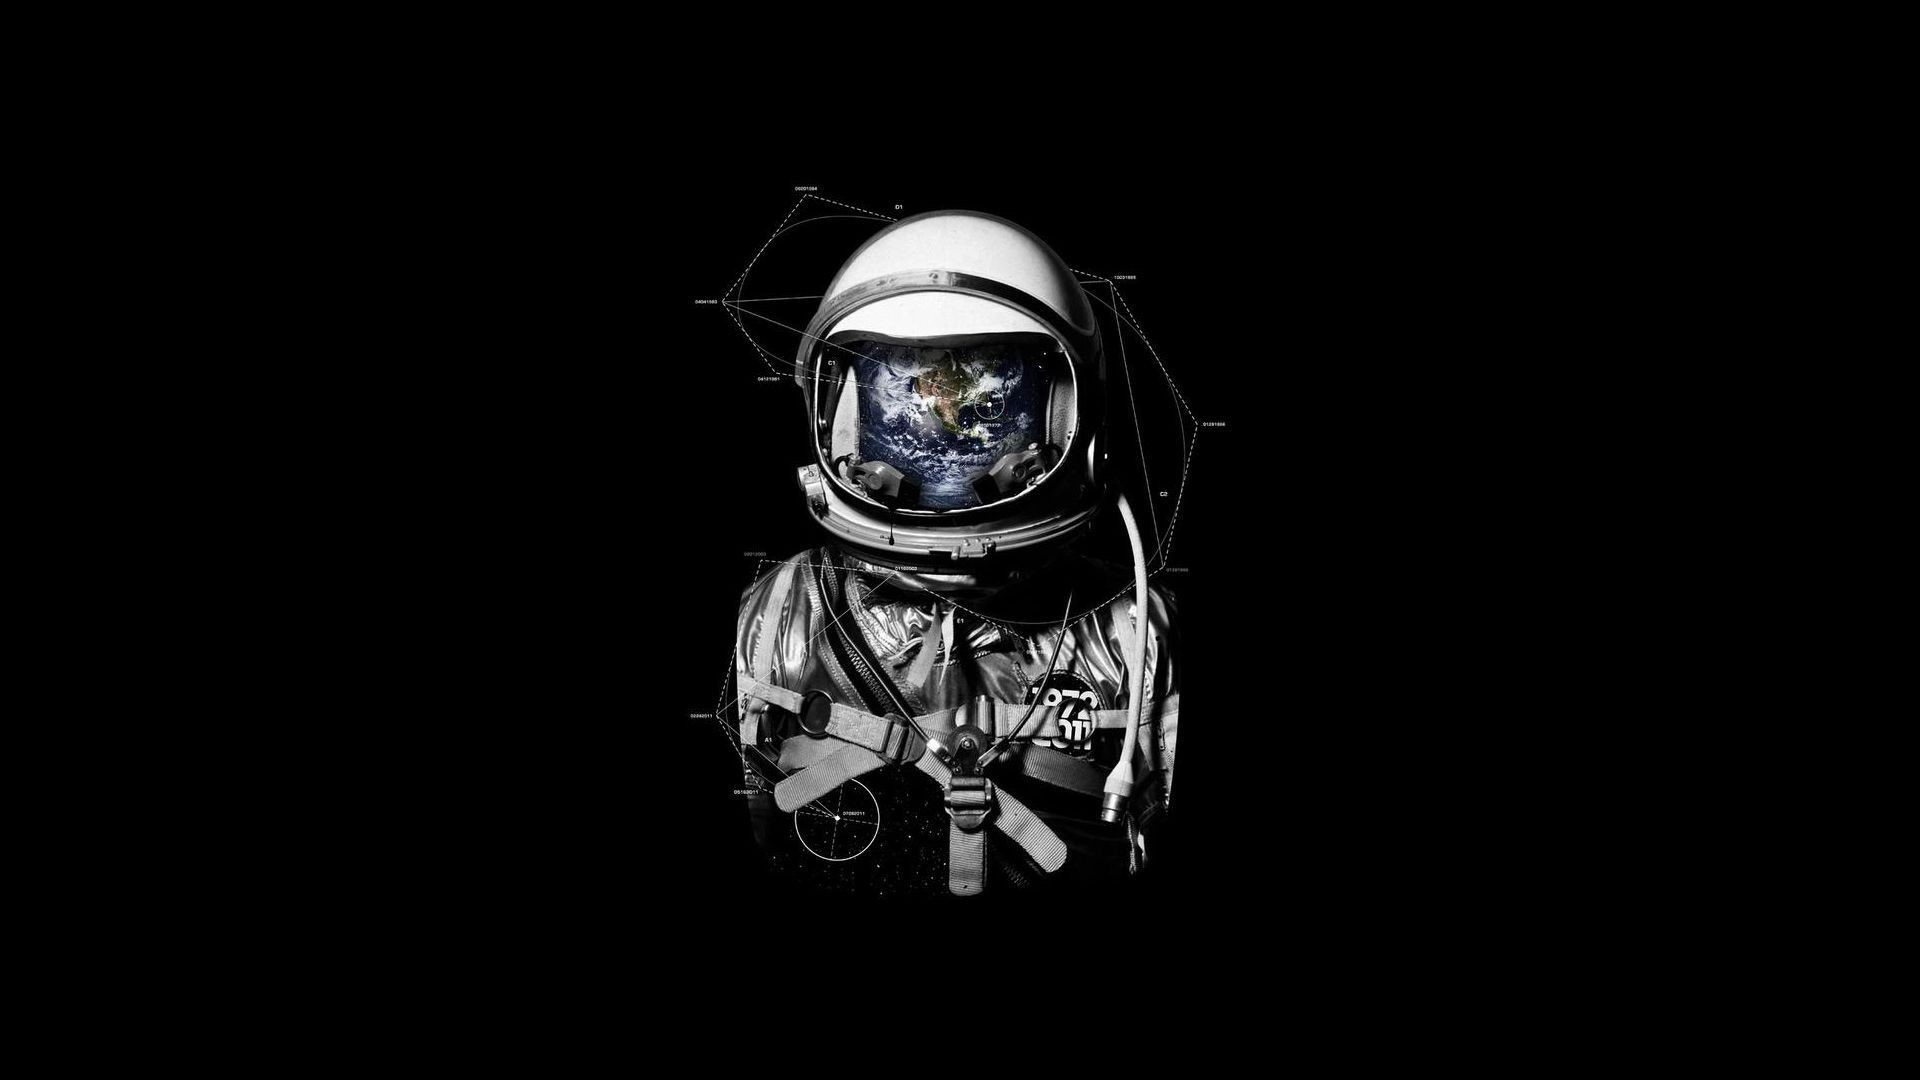 1920x1080 Astronaut Wallpapers For Android For Desktop Wallpaper 1920 x 1080 px  623.08 KB moon surreal space on fire stars awesome iphone earth